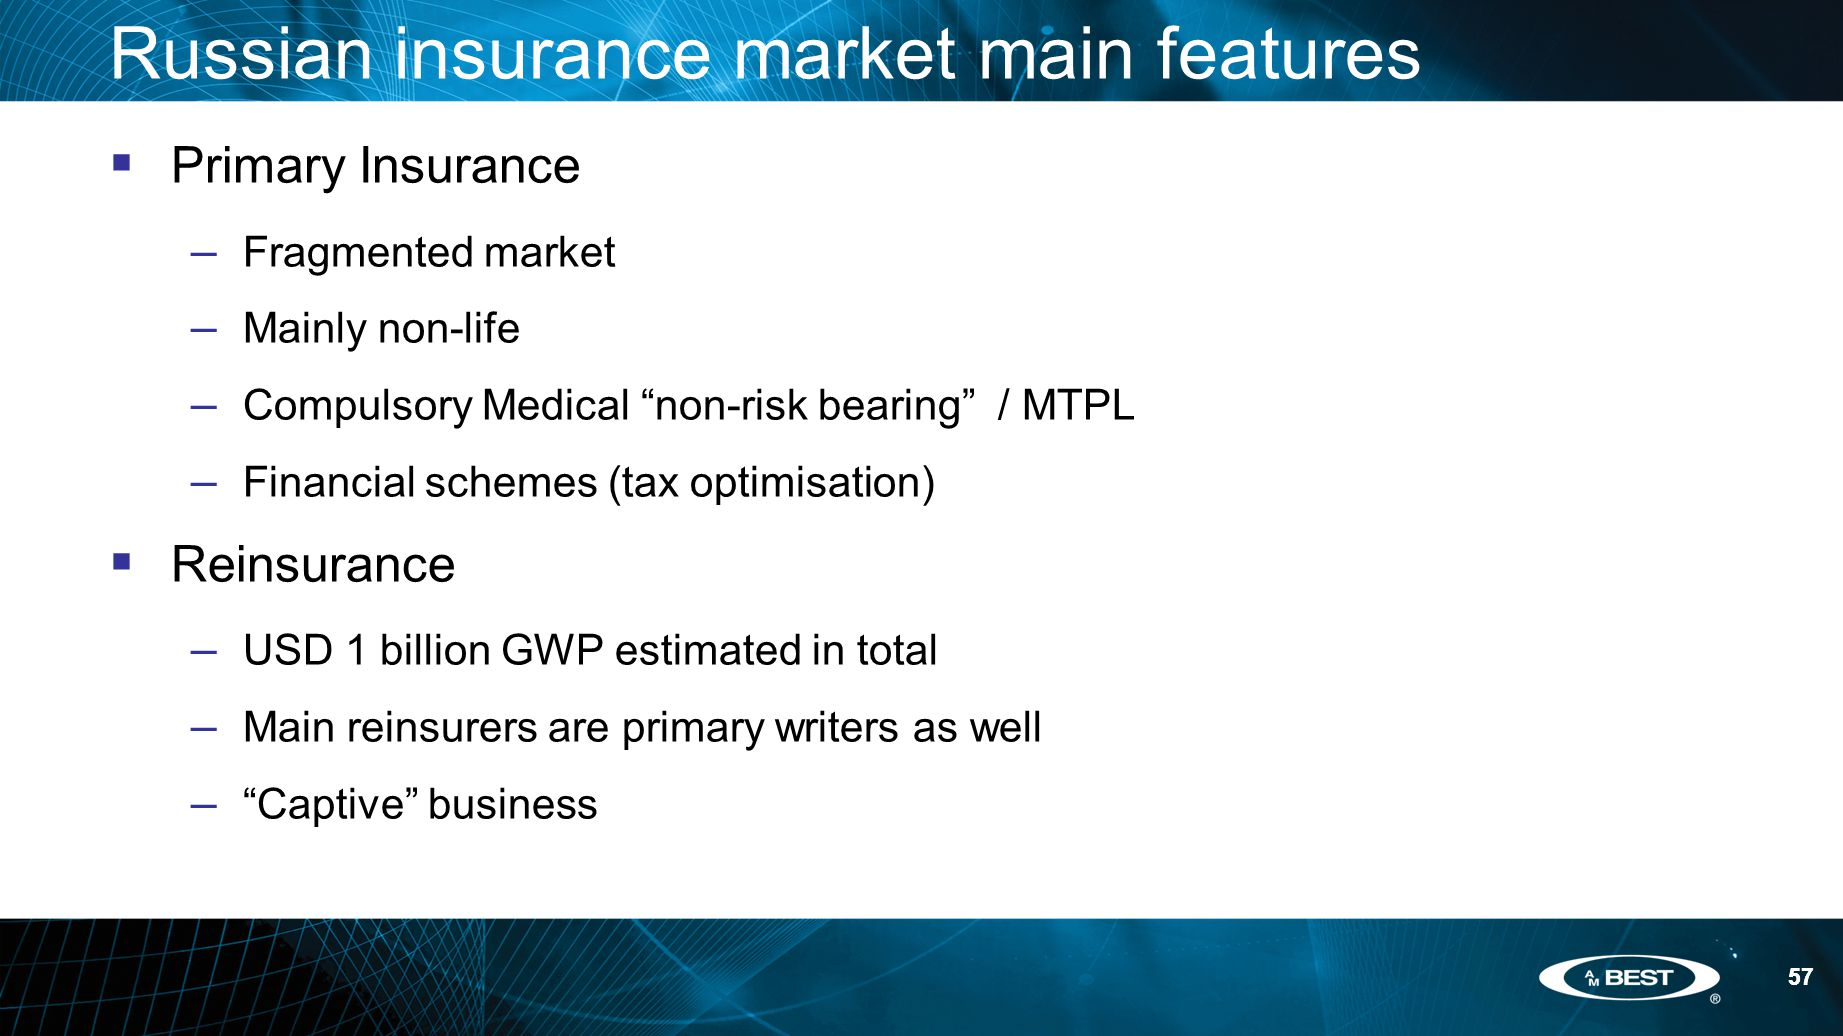 57 Russian insurance market main features  Primary Insurance – Fragmented market – Mainly non-life – Compulsory Medical non-risk bearing / MTPL – Financial schemes (tax optimisation)  Reinsurance – USD 1 billion GWP estimated in total – Main reinsurers are primary writers as well – Captive business 57